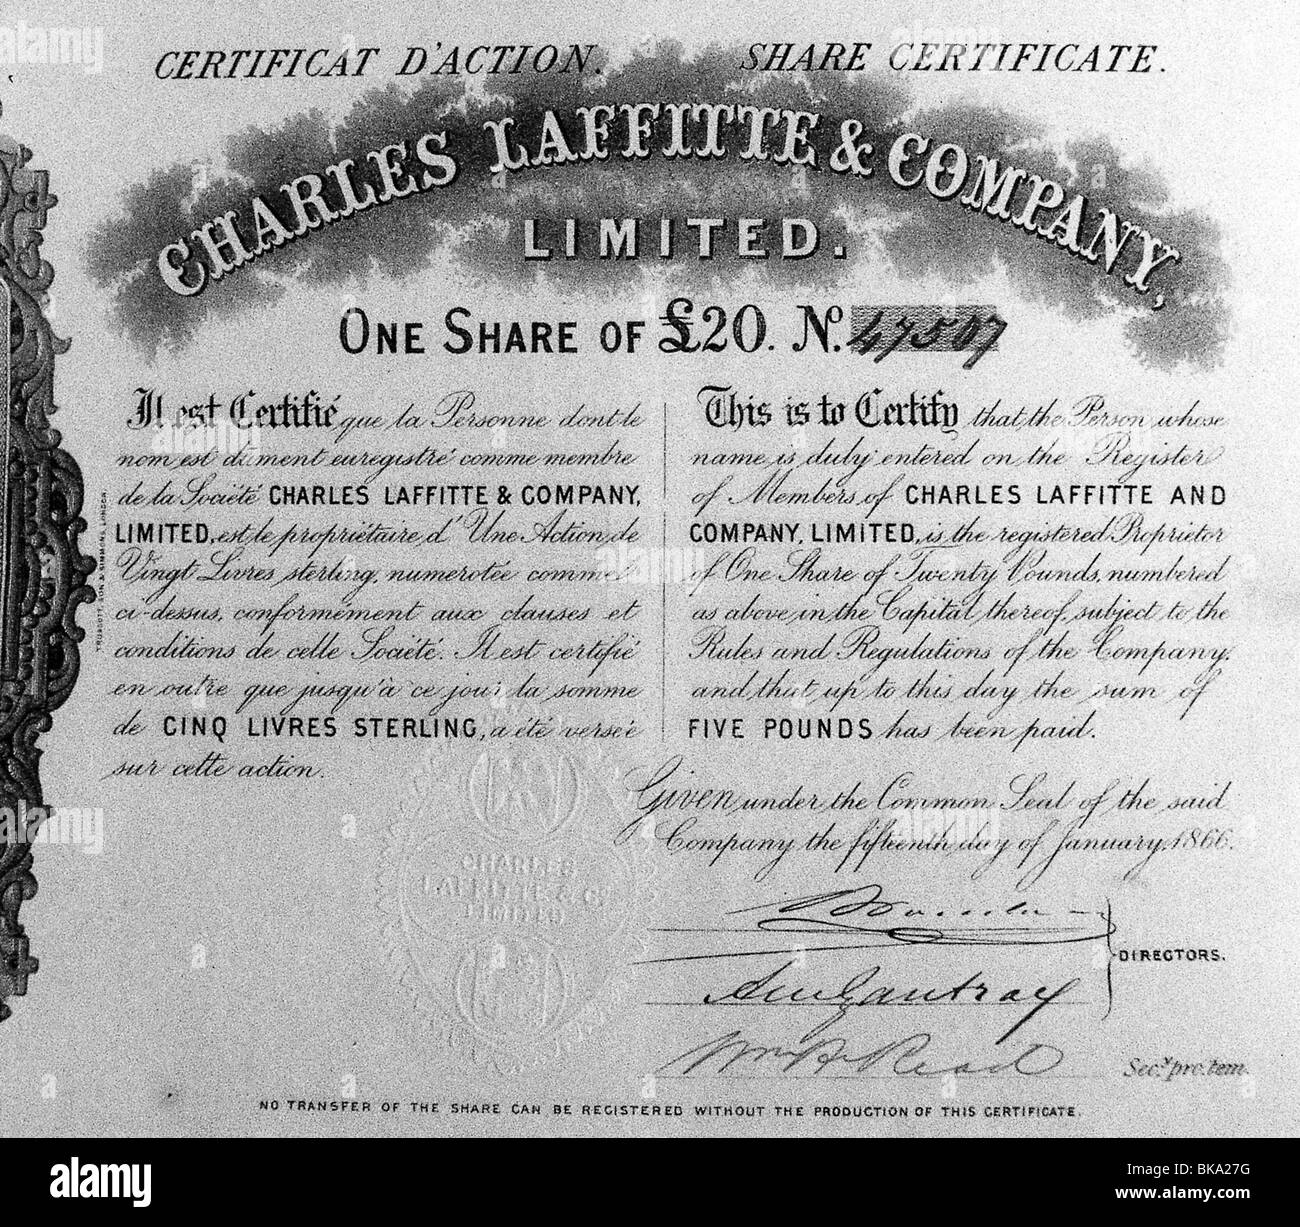 money / finance, stocks, share certificate of Charles Laffitte and Company Limited, share about 20 pound, No. 47507, - Stock Image